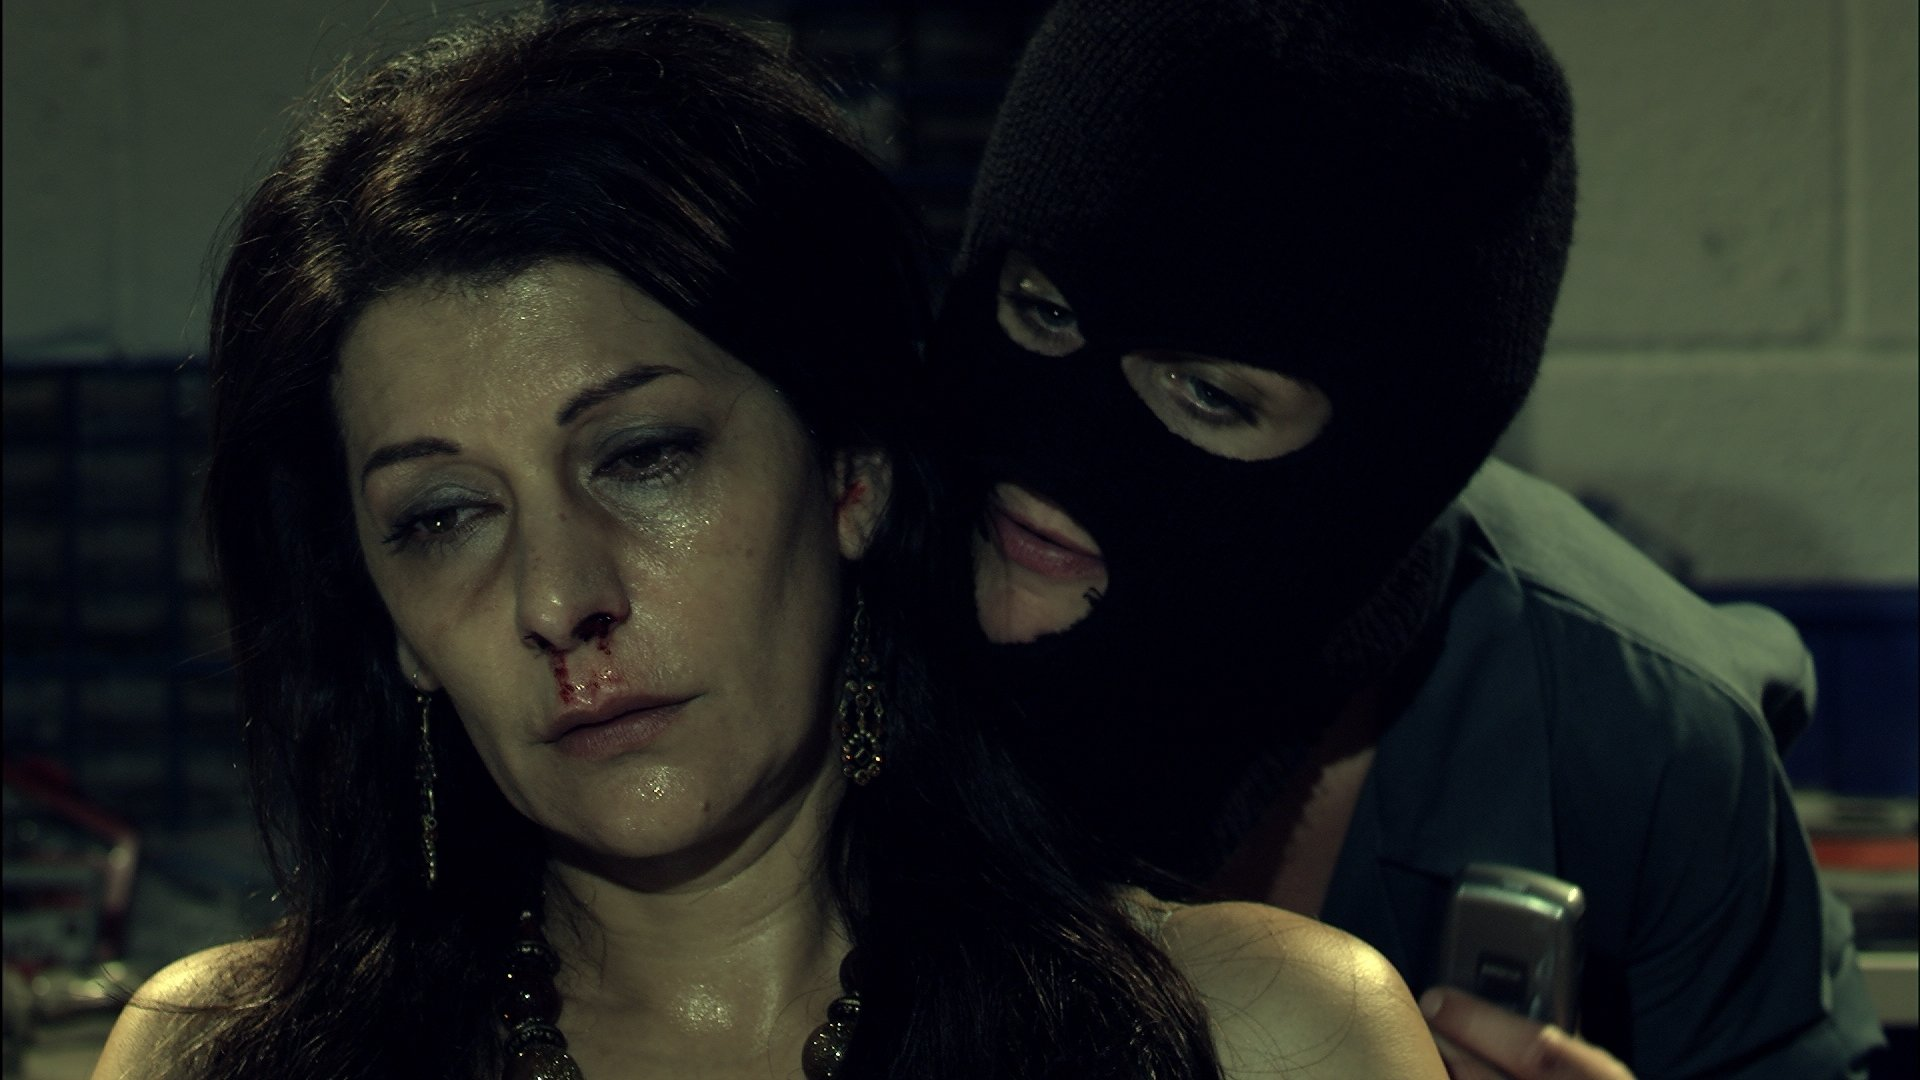 Marina Sirtis and Heather Peace in 31 North 62 East (2009)